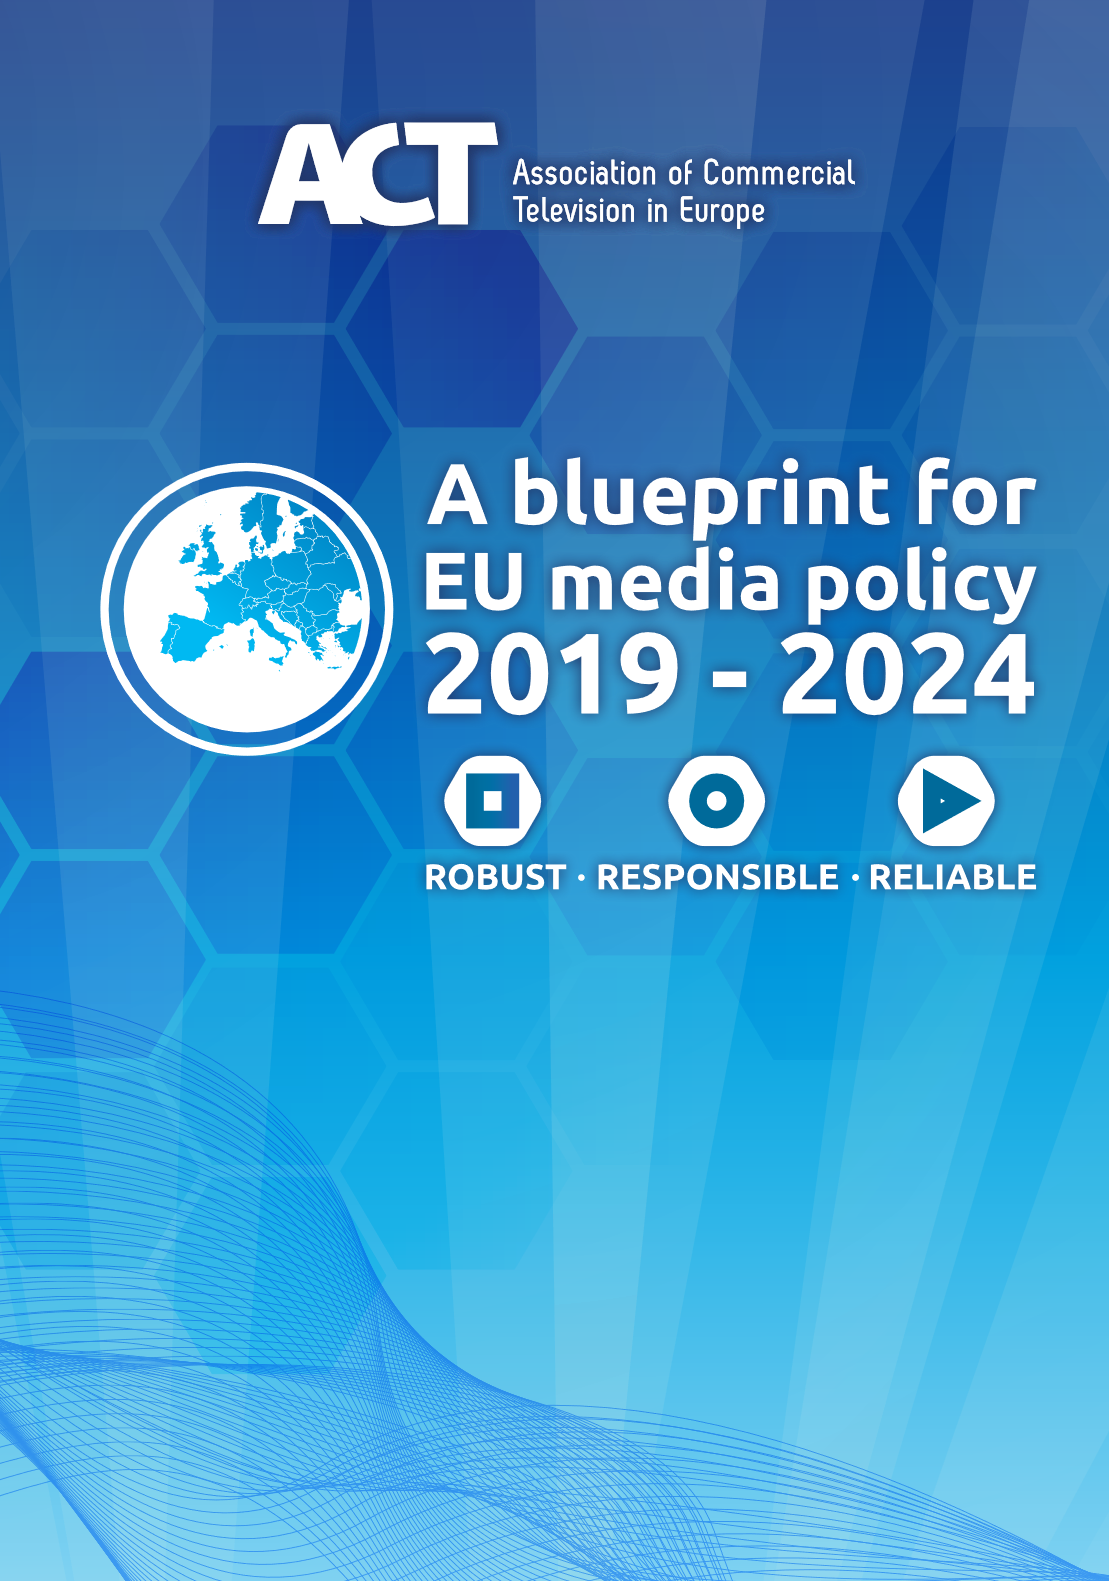 A Blueprint for EU Media Policy 2019-2024